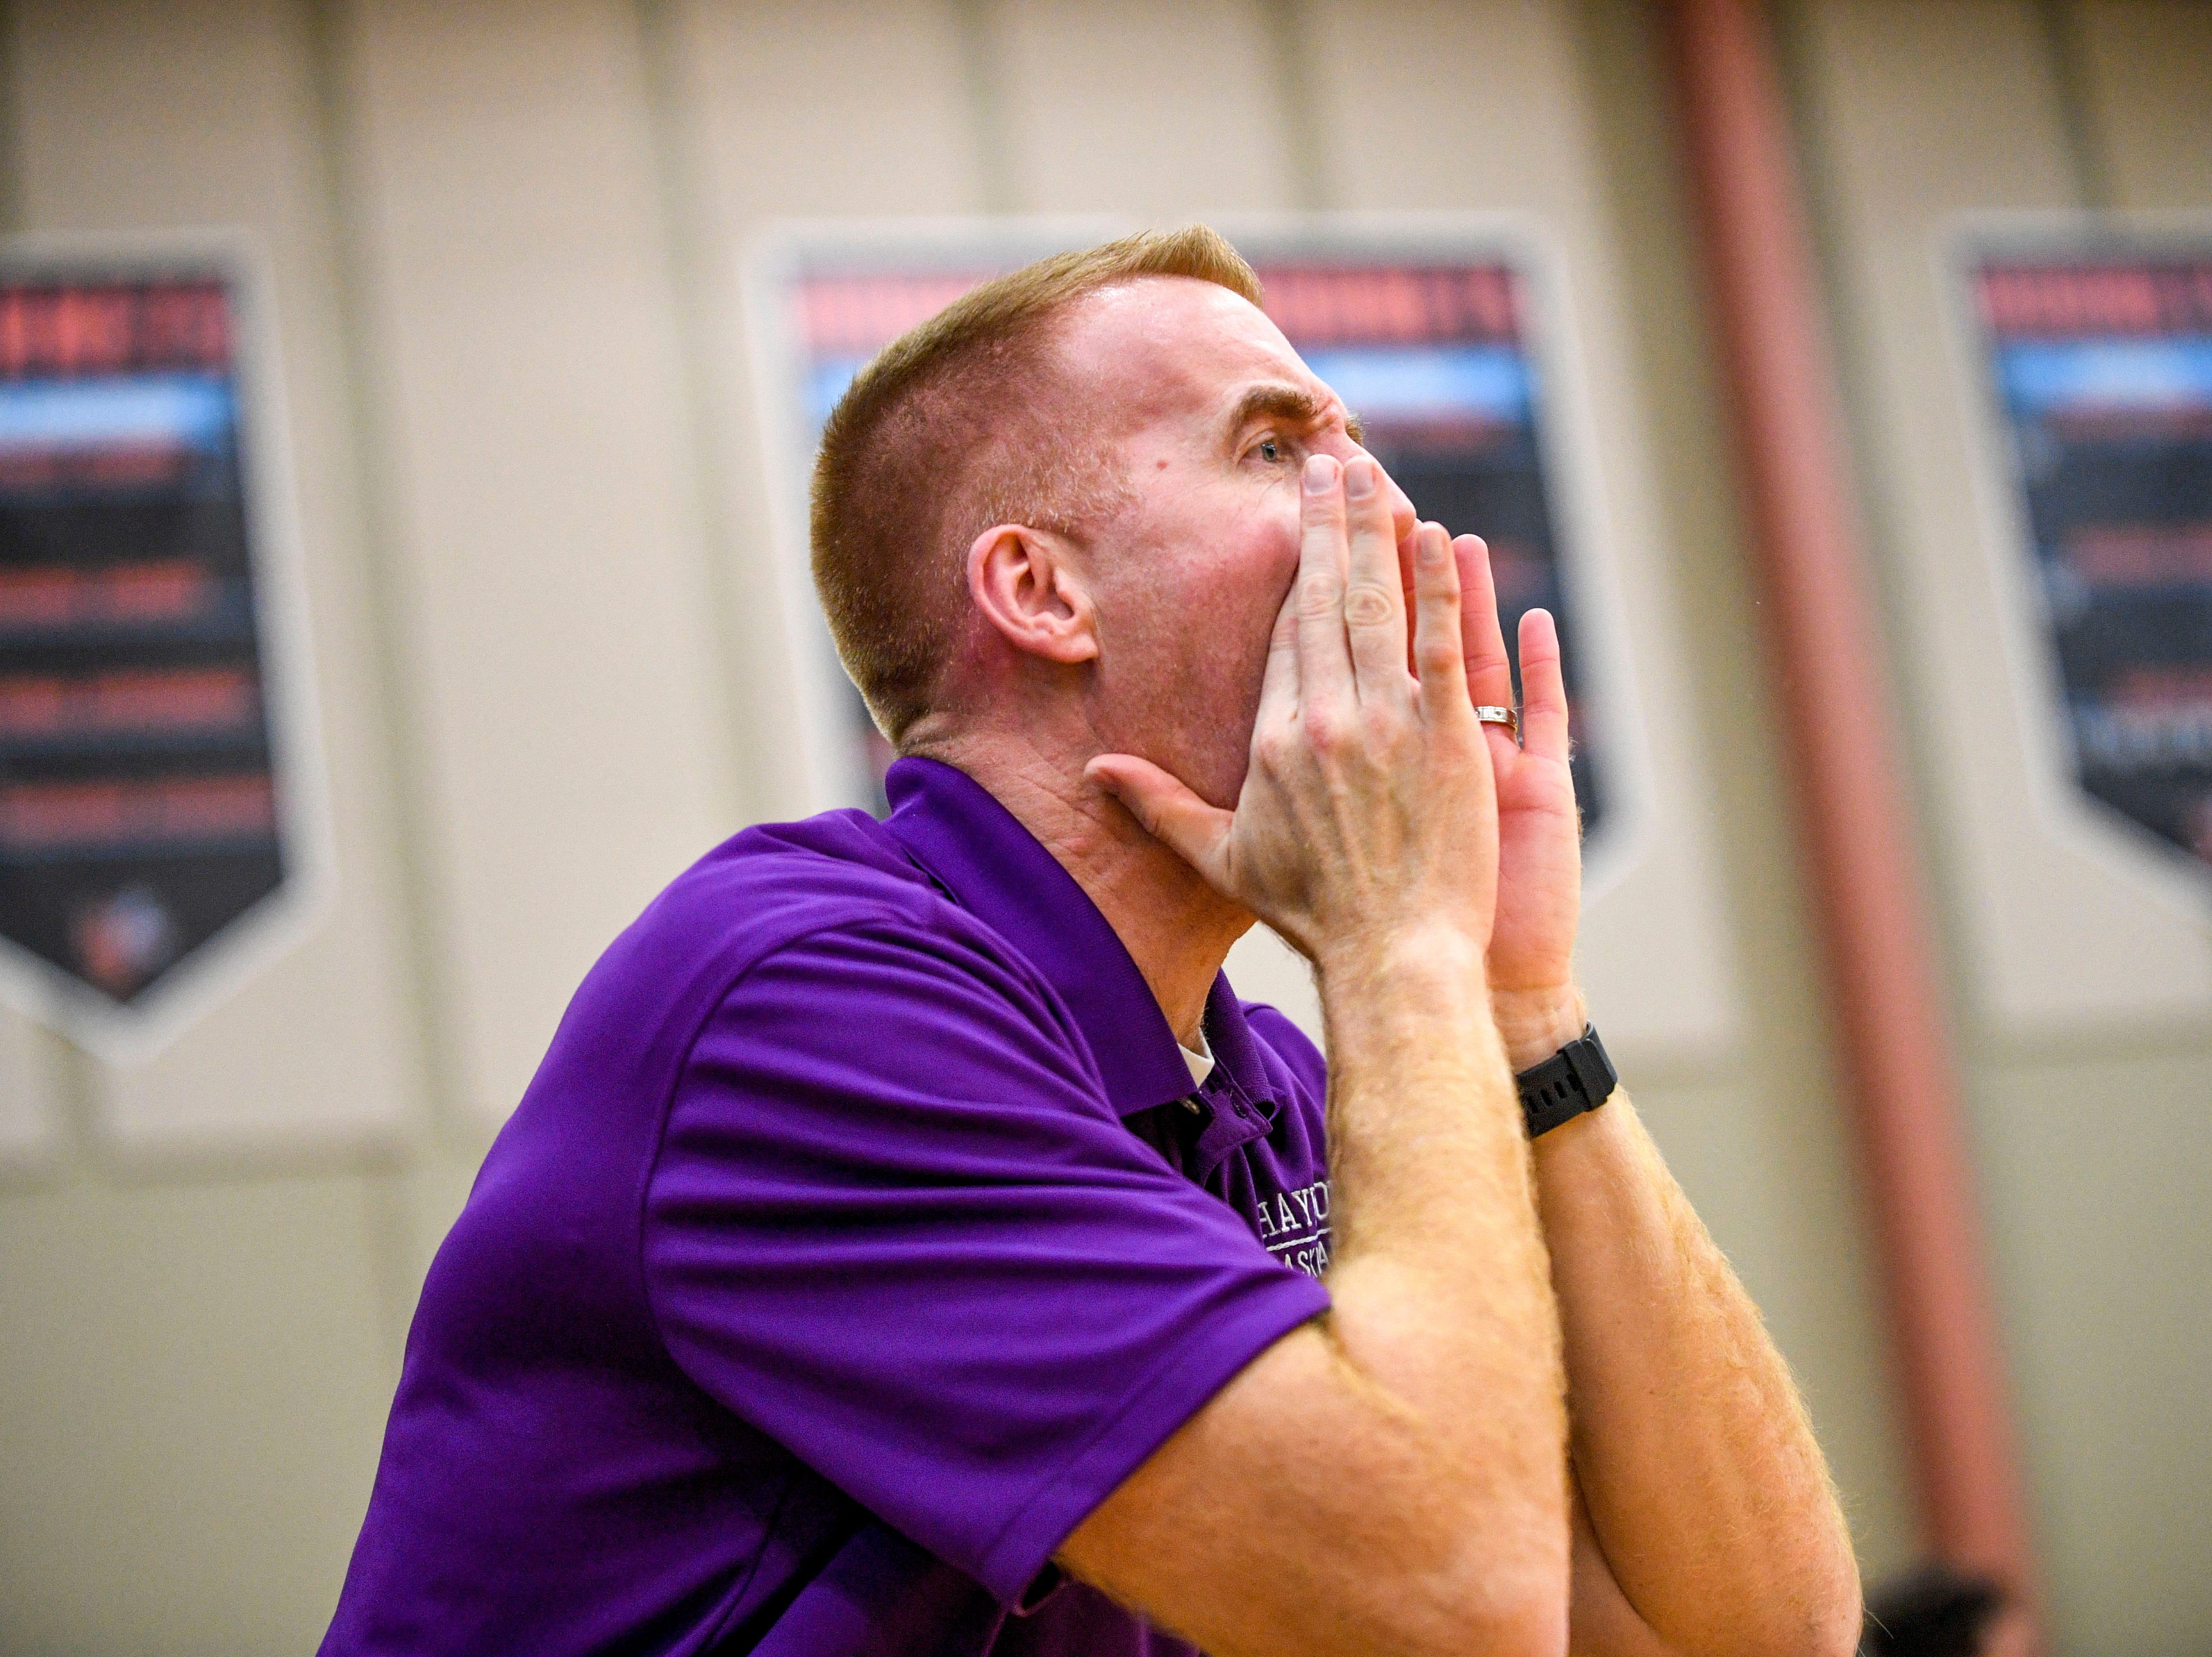 Haywood head coach Oliver Simmons yells to his team from the sidelines in a TSSAA boys basketball game between South Gibson and Haywood High Schools at South Gibson High School in Medina, Tenn., on Tuesday, Nov. 27, 2018.